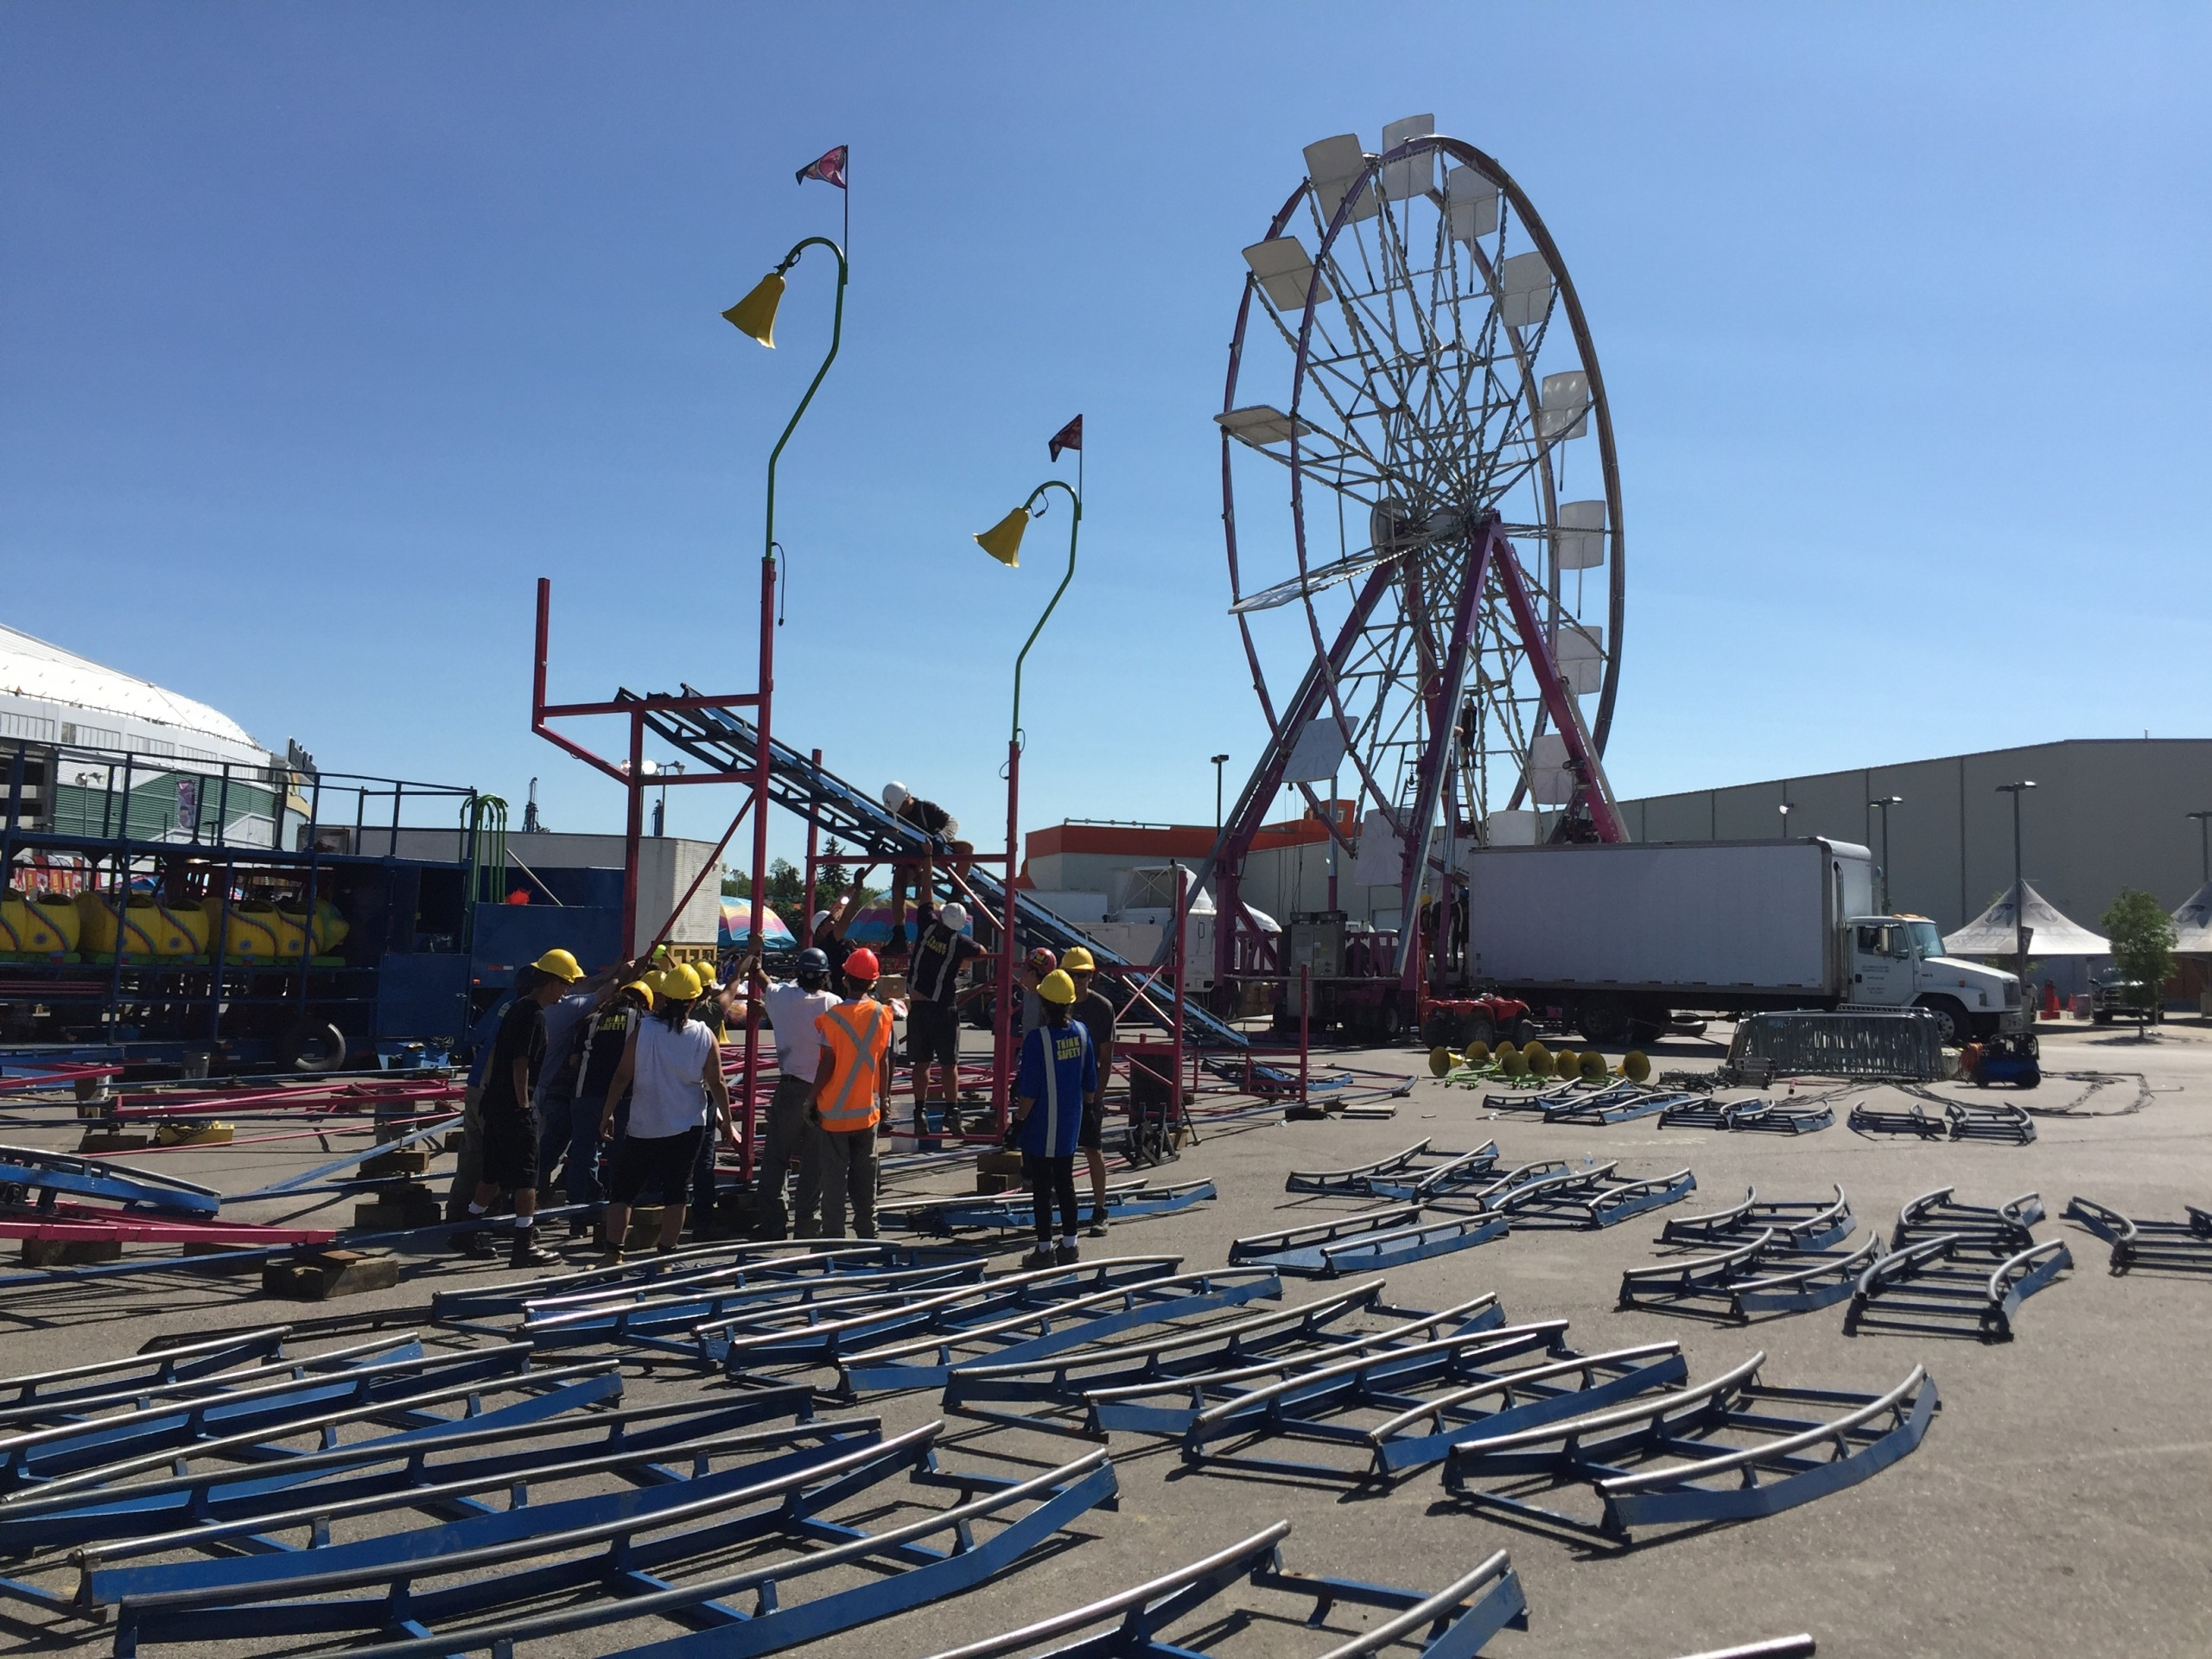 QCX will be full of ride goers and police this year